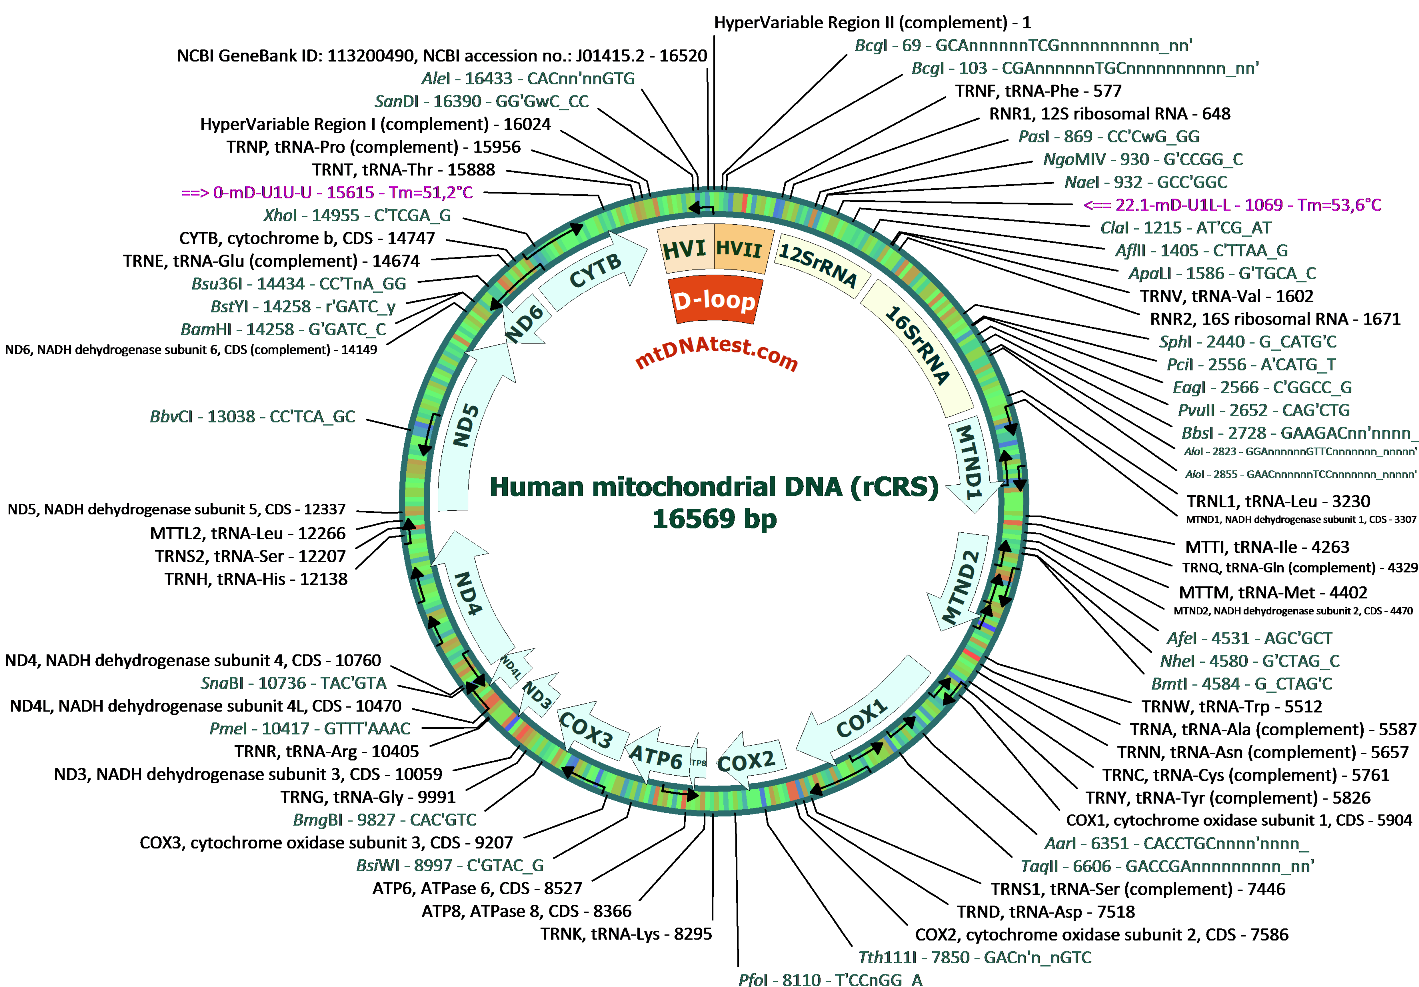 Tracing mitochondrial dna